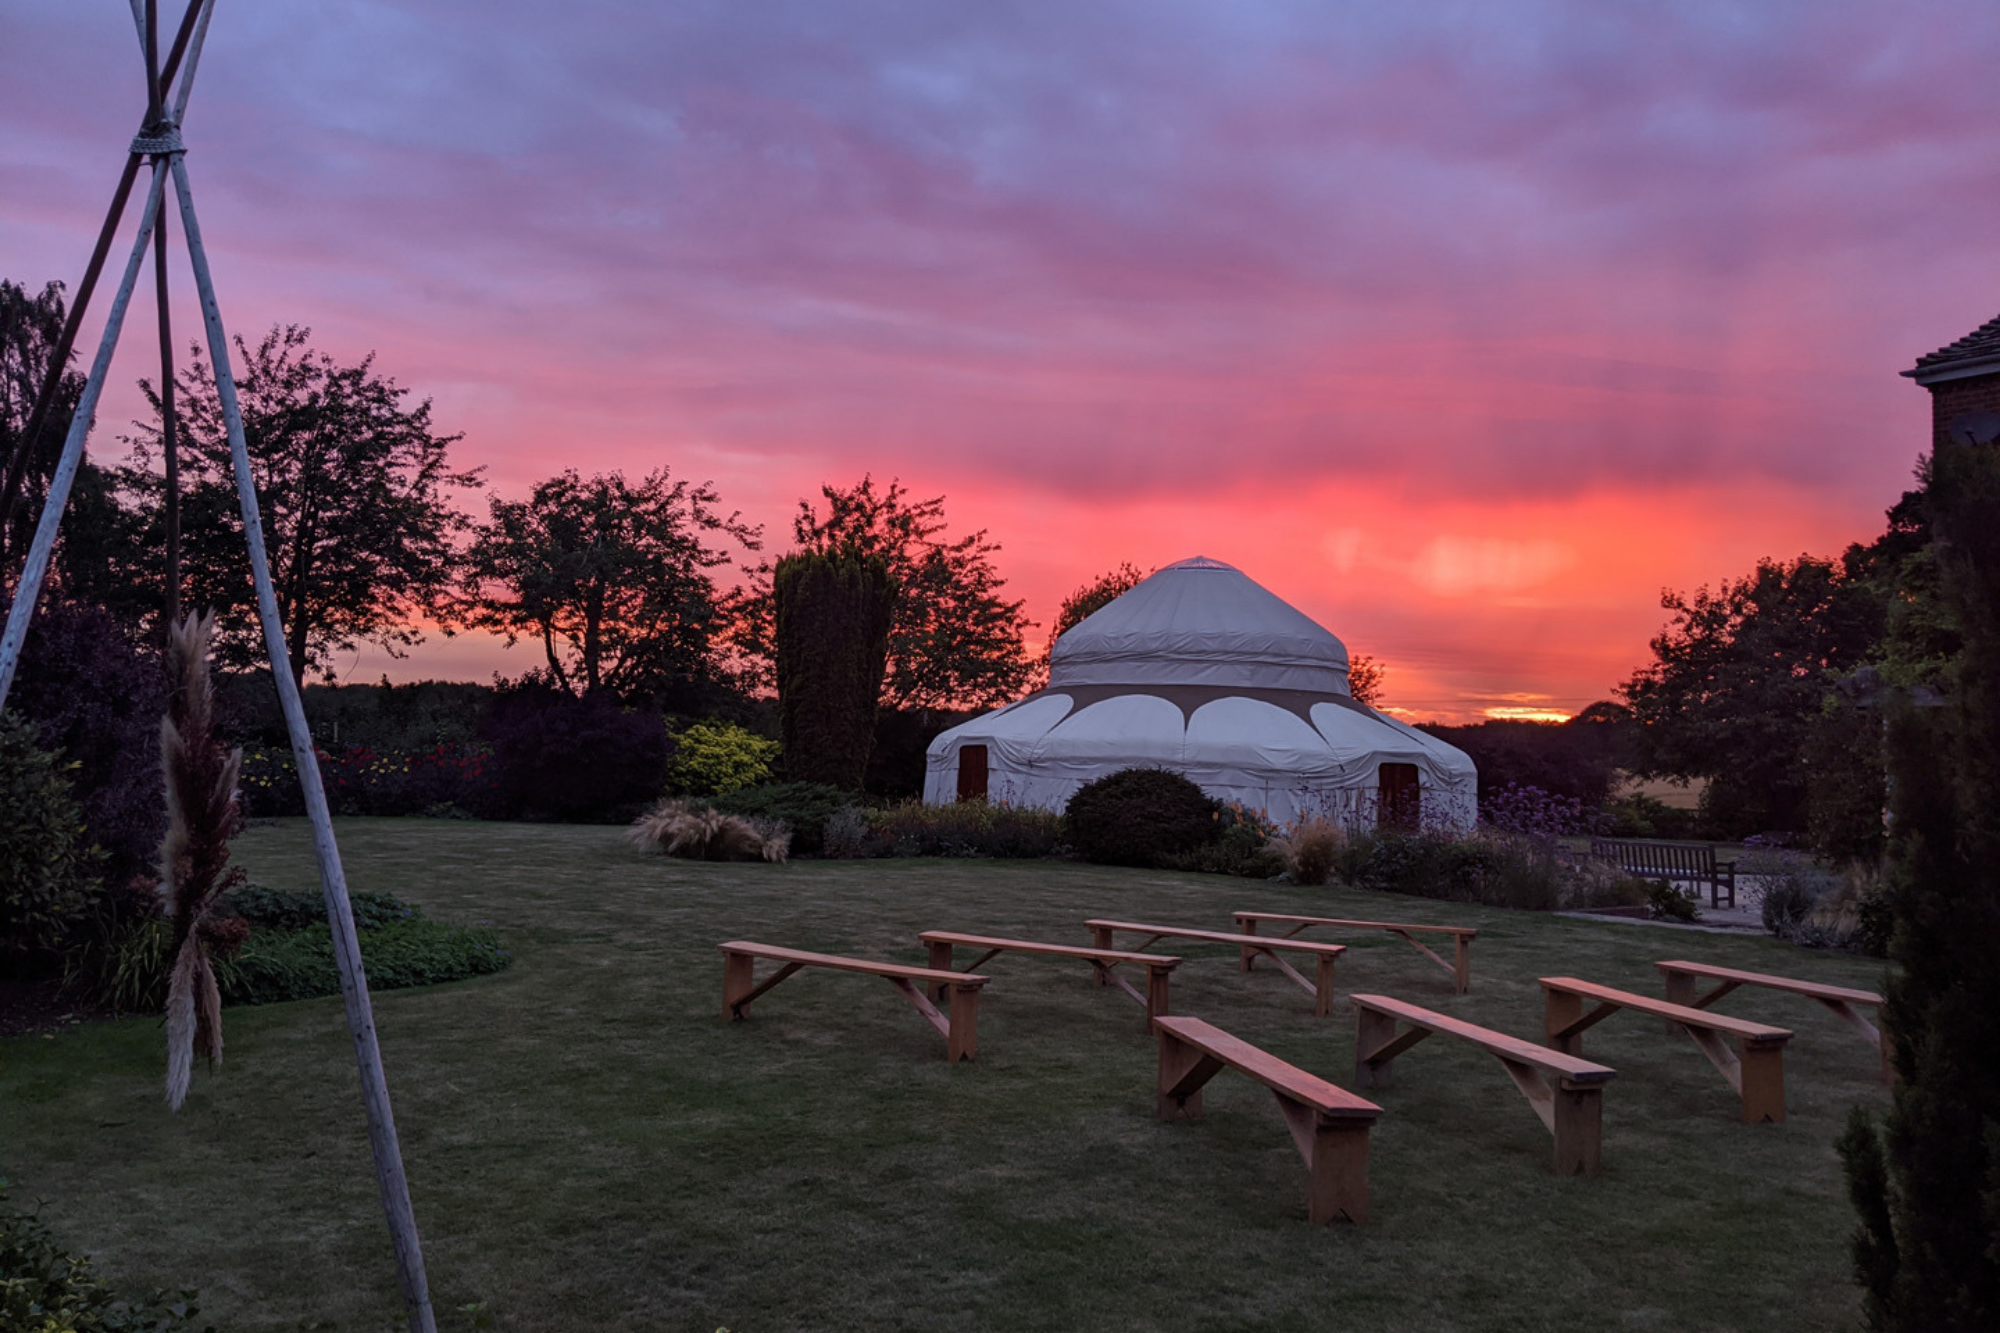 The Gardens at Polehanger - Bedfordshire wedding venue